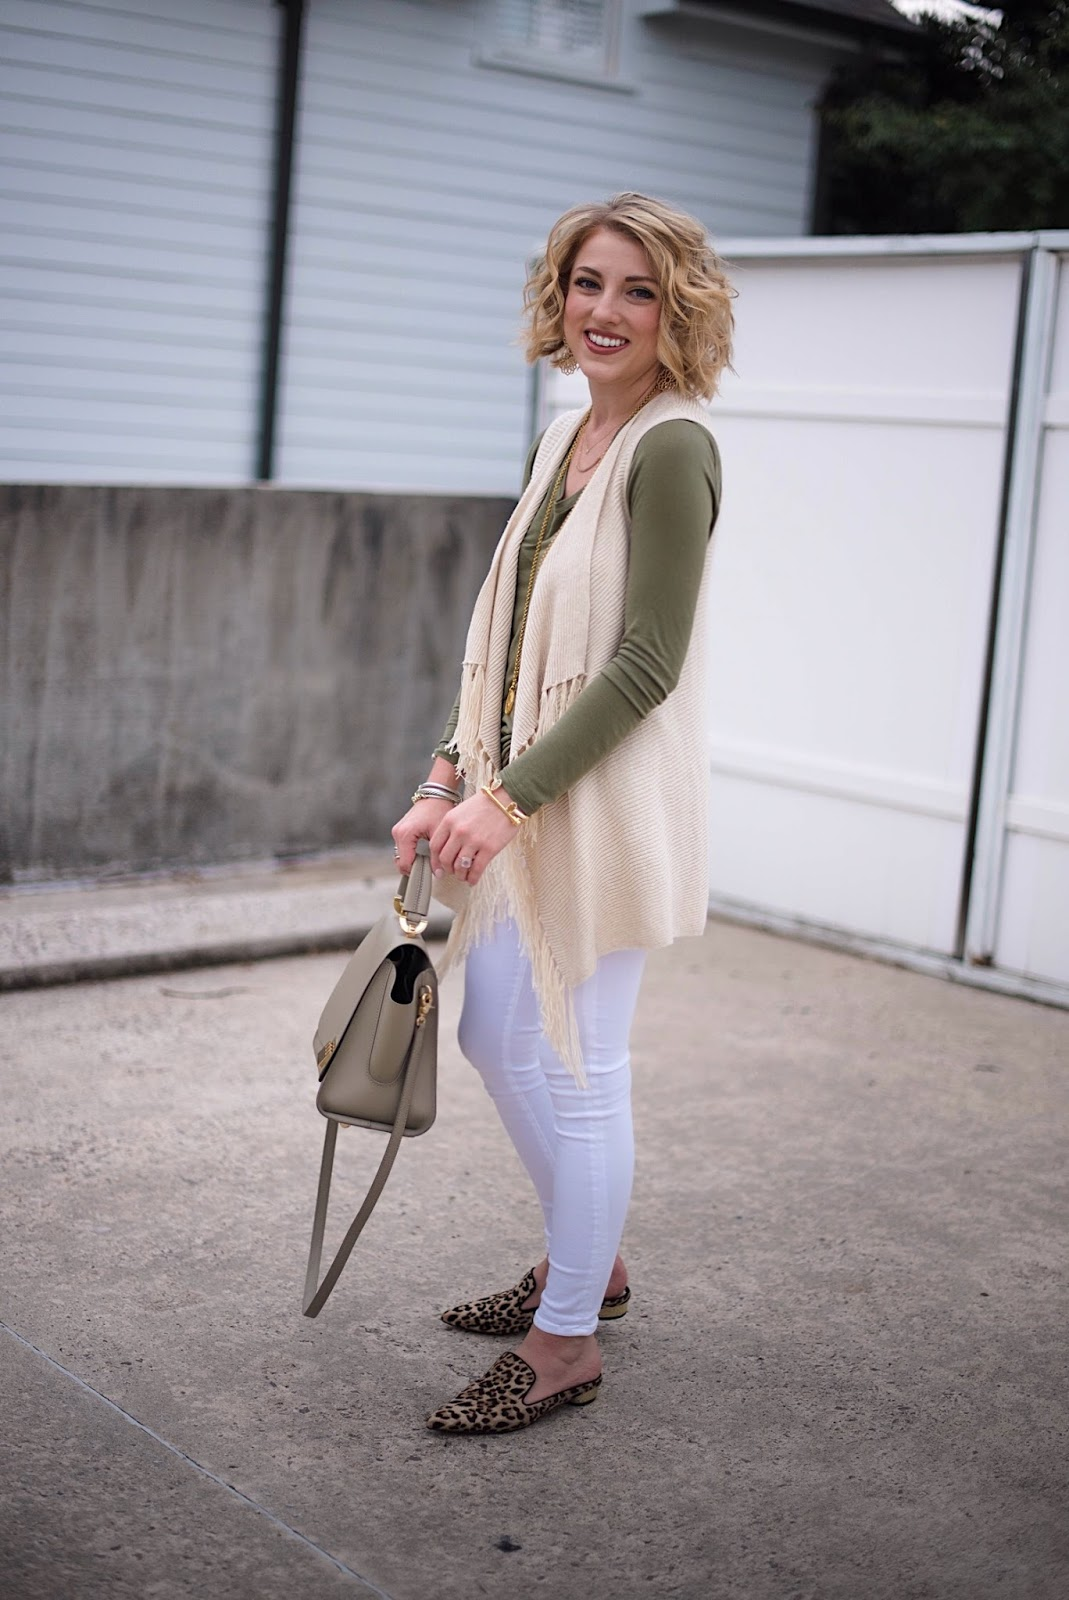 Olive, White, Gold & Leopard - Something Delightful Blog